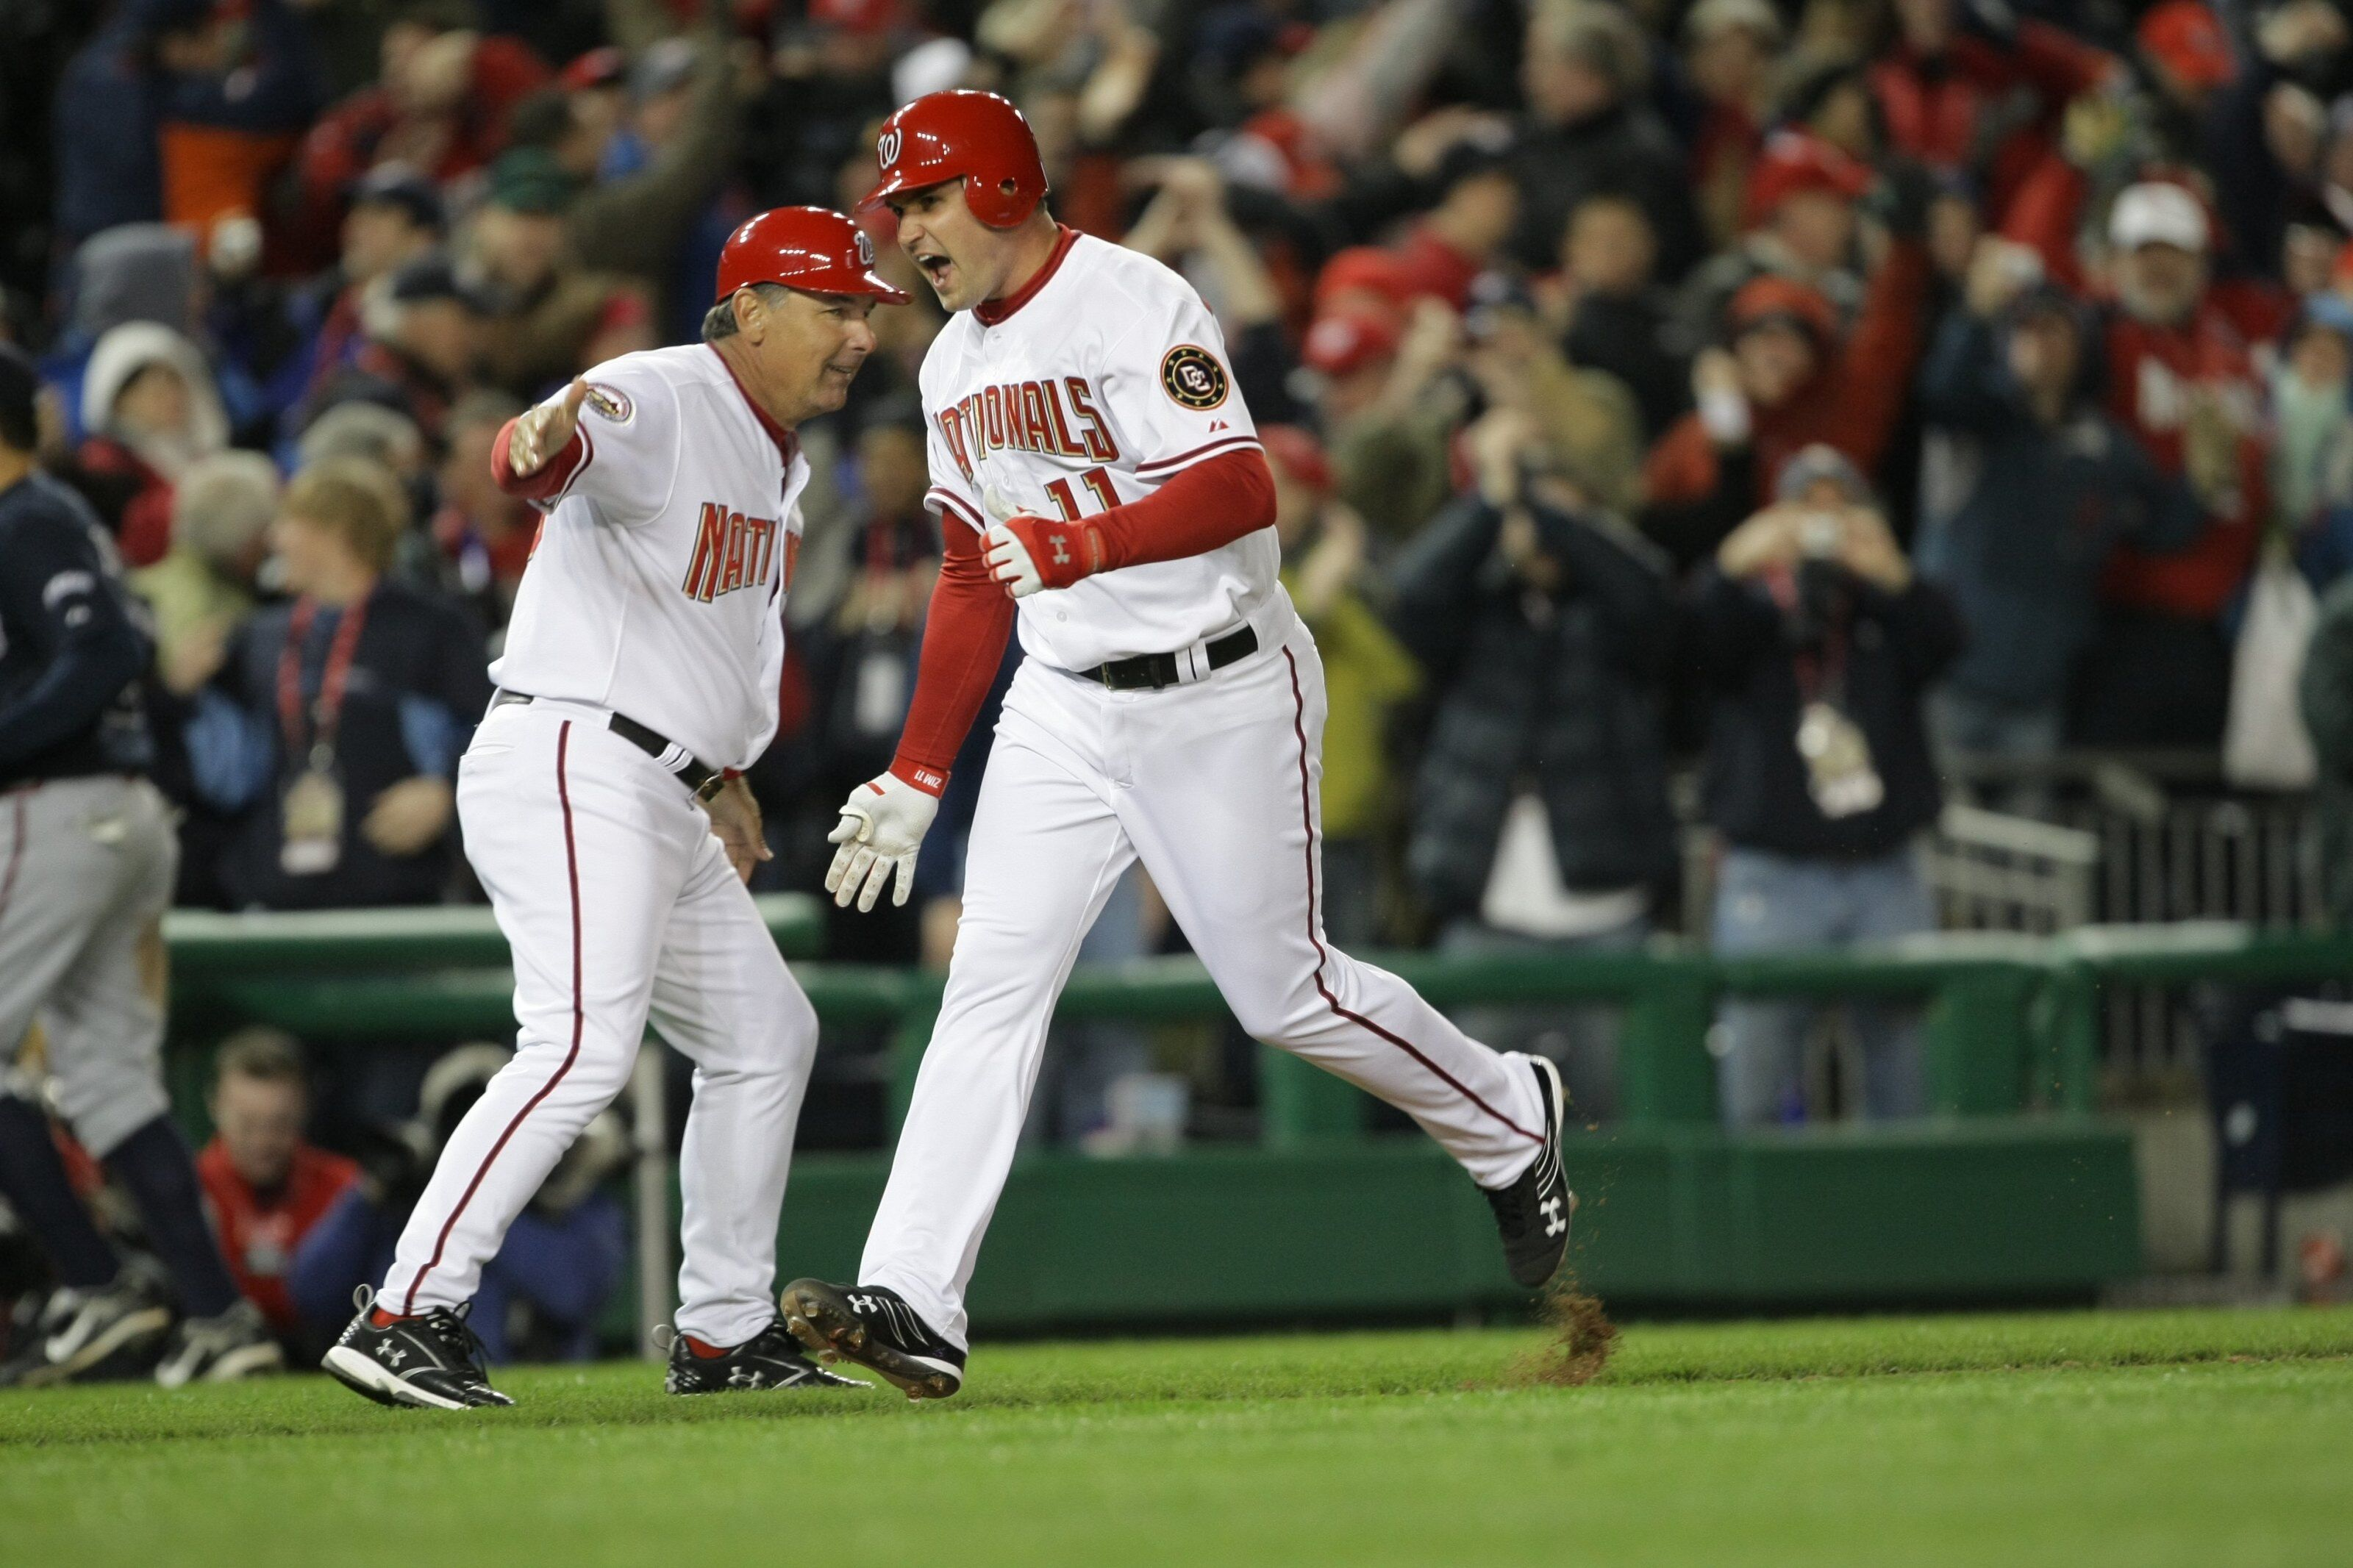 Washington Nationals: Ryan Zimmerman stayed in the fight